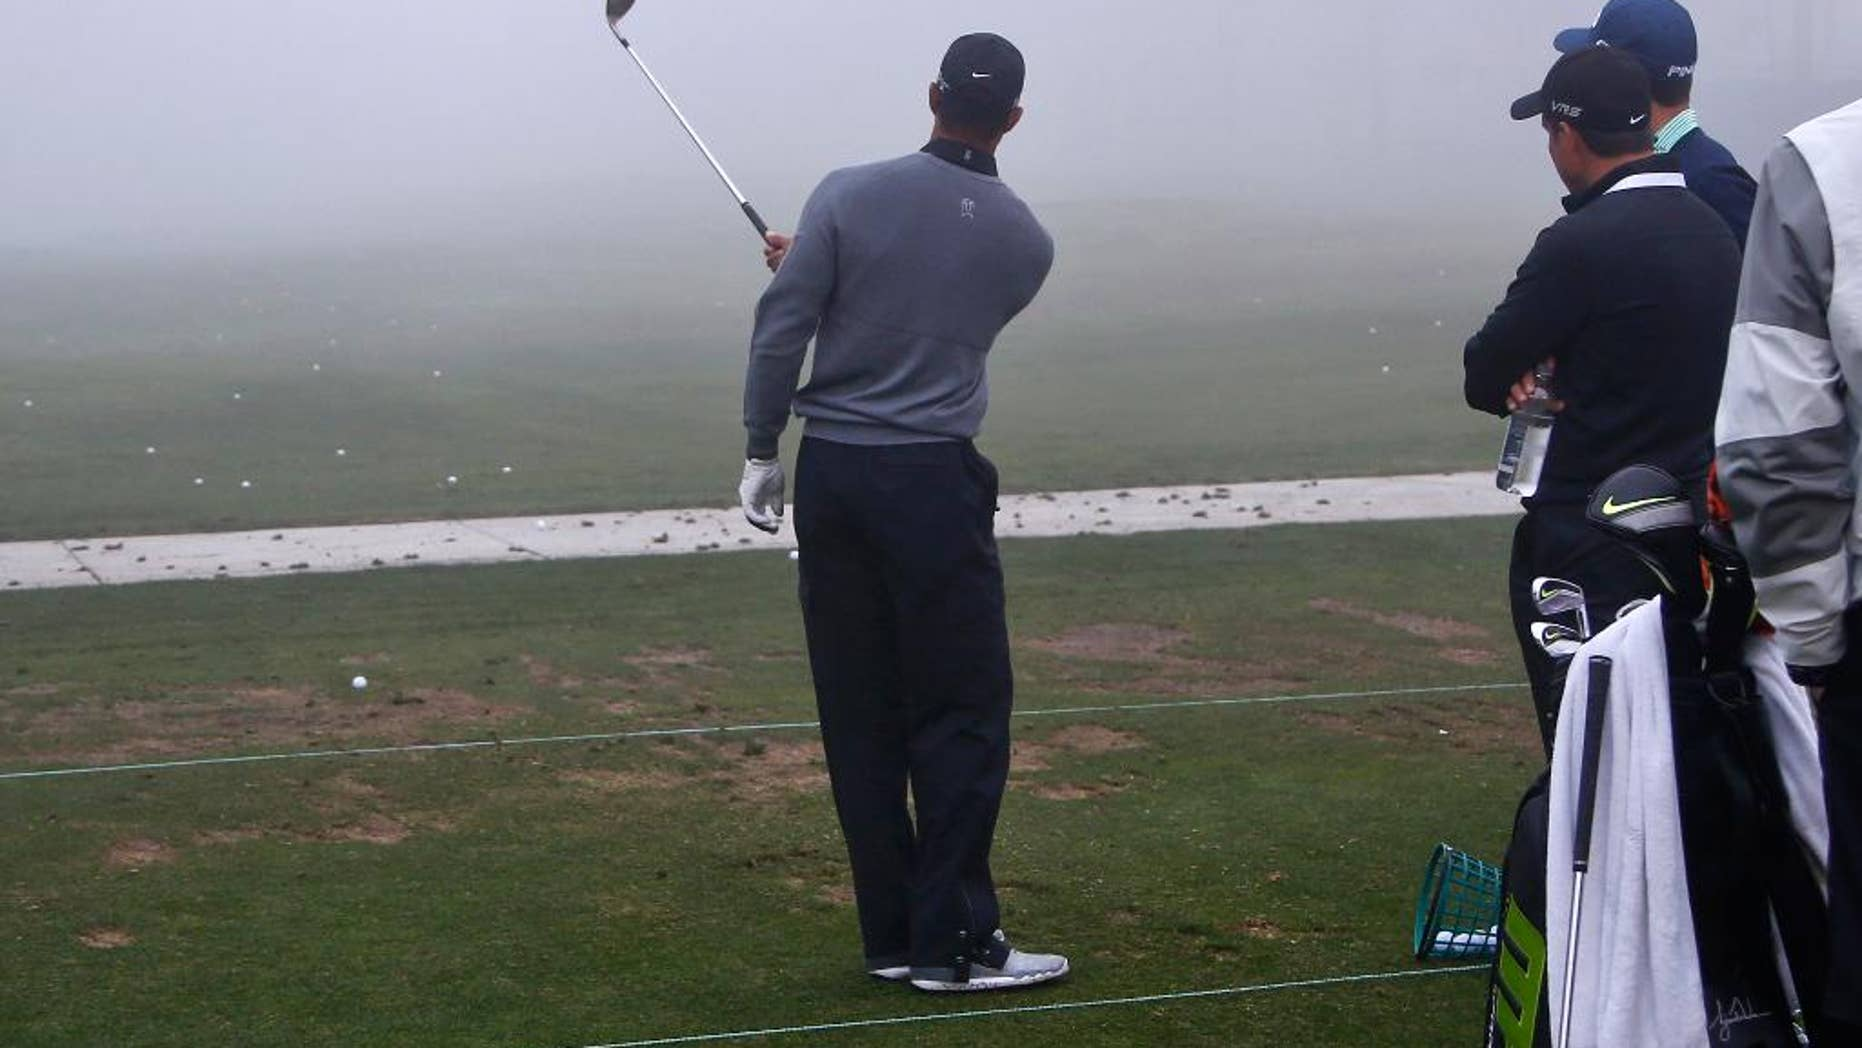 Tiger Woods hits one-handed pitch shots as his coach Chris Como, right, watches during a fog delay prior to the pro-am at the Framers Insurance Open golf tournament at Torrey Pines, Wednesday, Feb. 4, 2015, in San Diego. (AP Photo/Lenny Ignelzi)